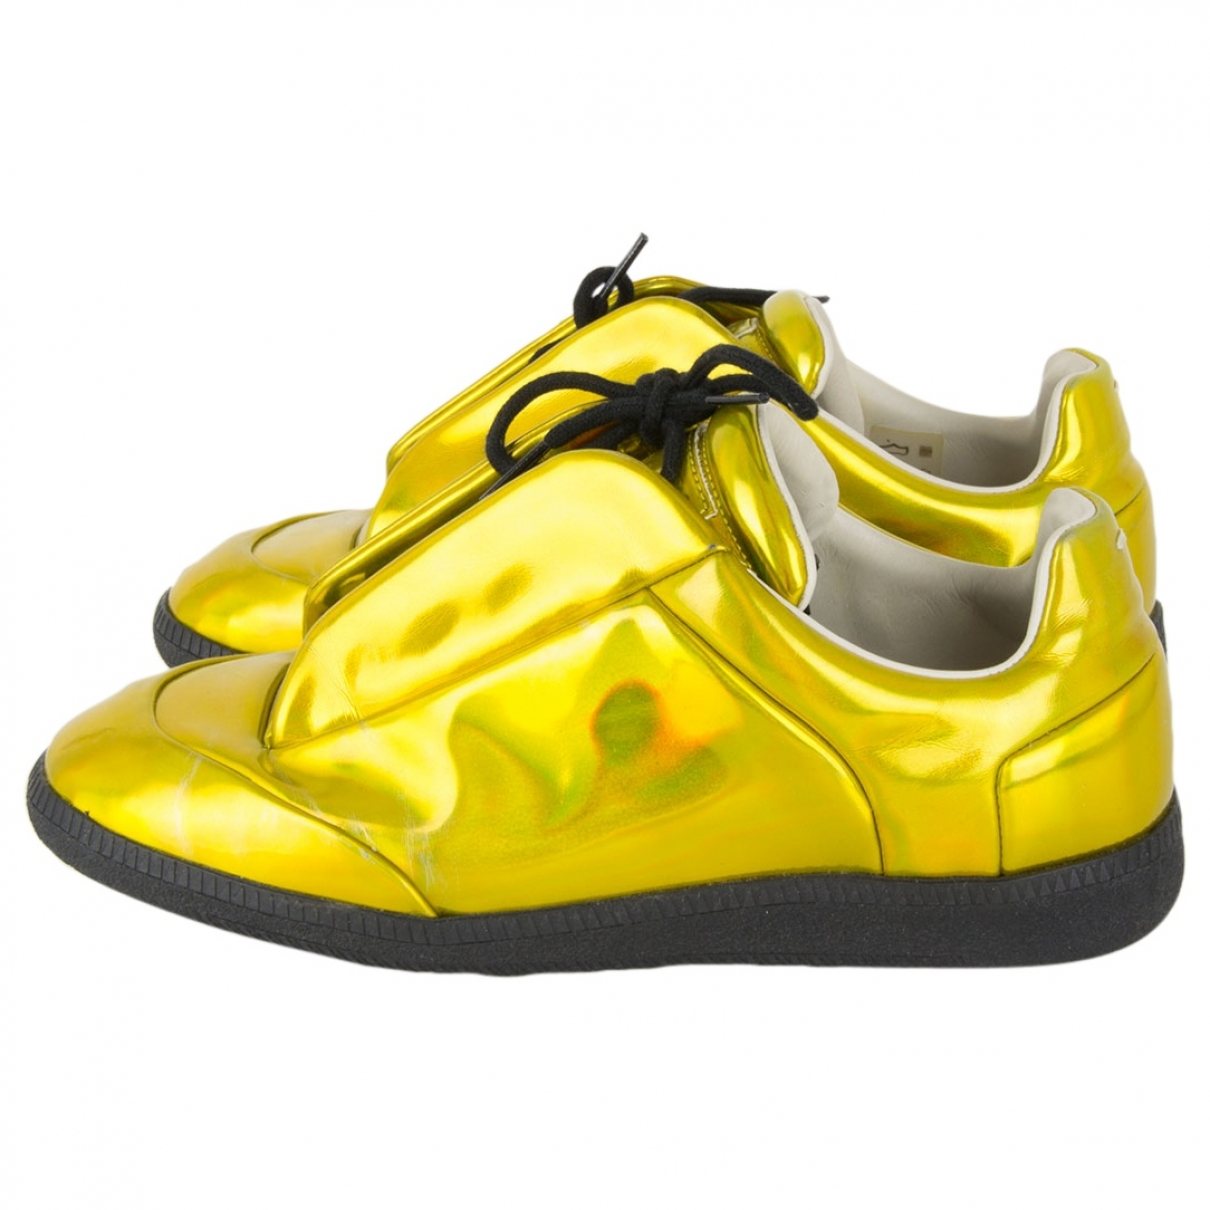 Maison Martin Margiela \N Gold Patent leather Trainers for Women 39 EU